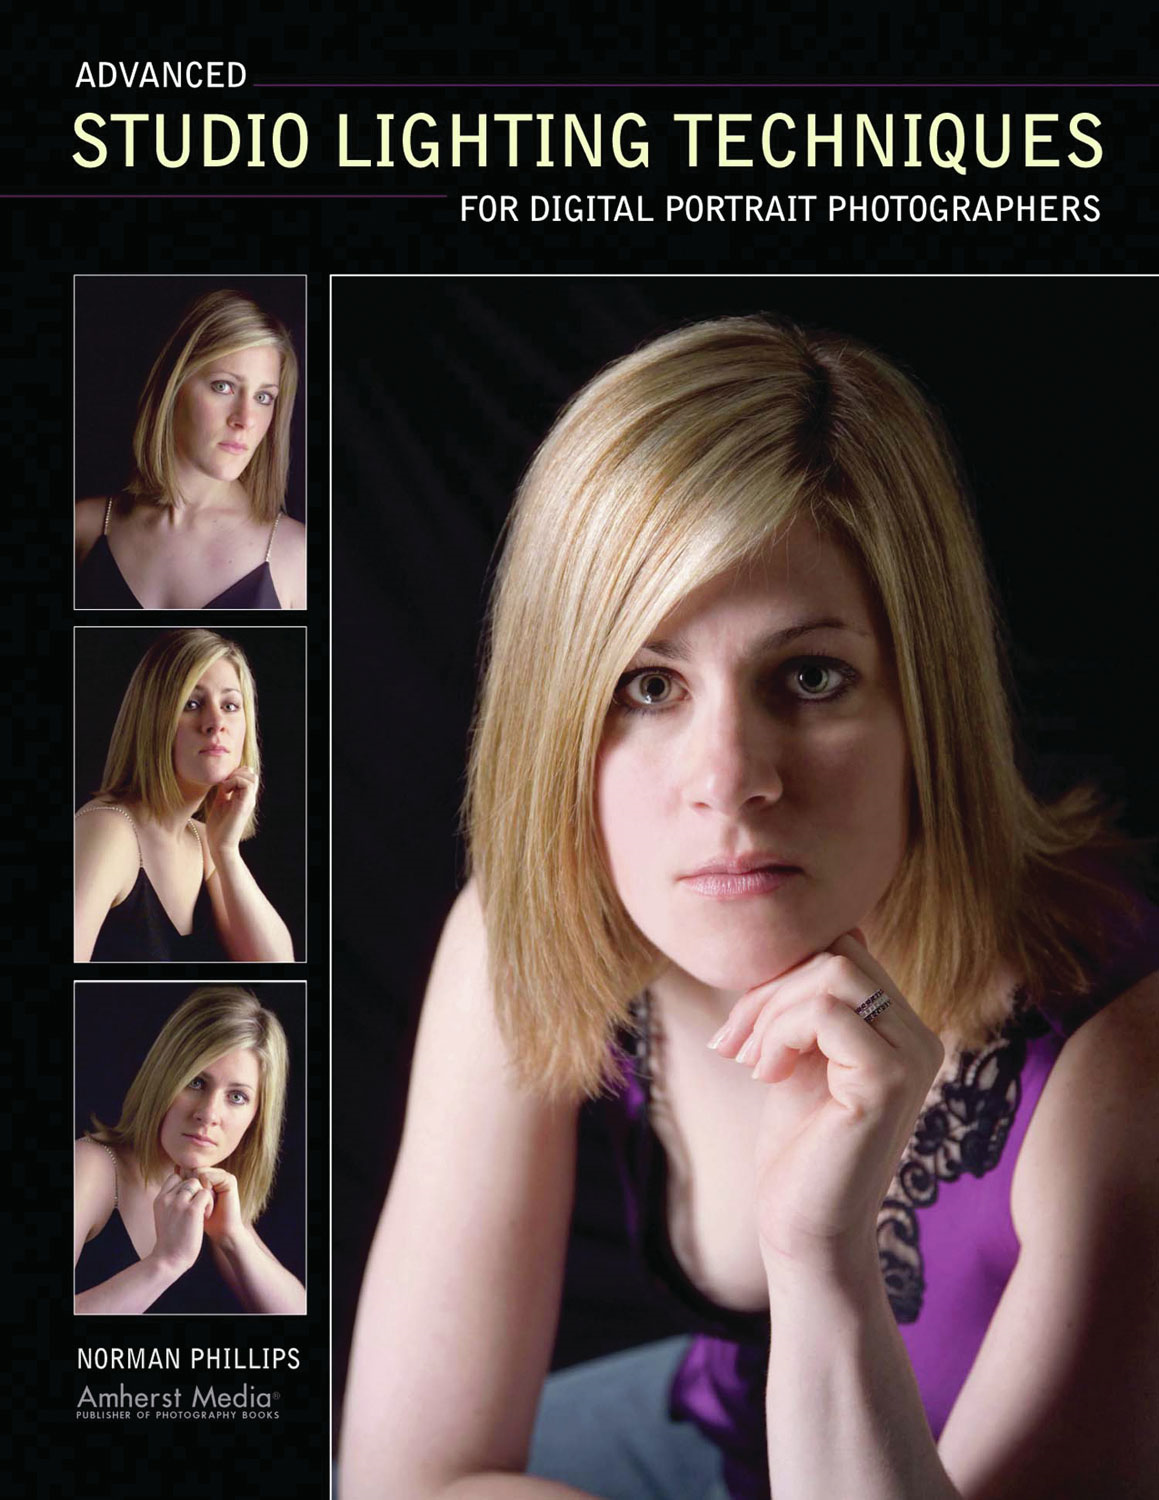 Advanced Studio Lighting Techniques for Digital Portrait Photographers